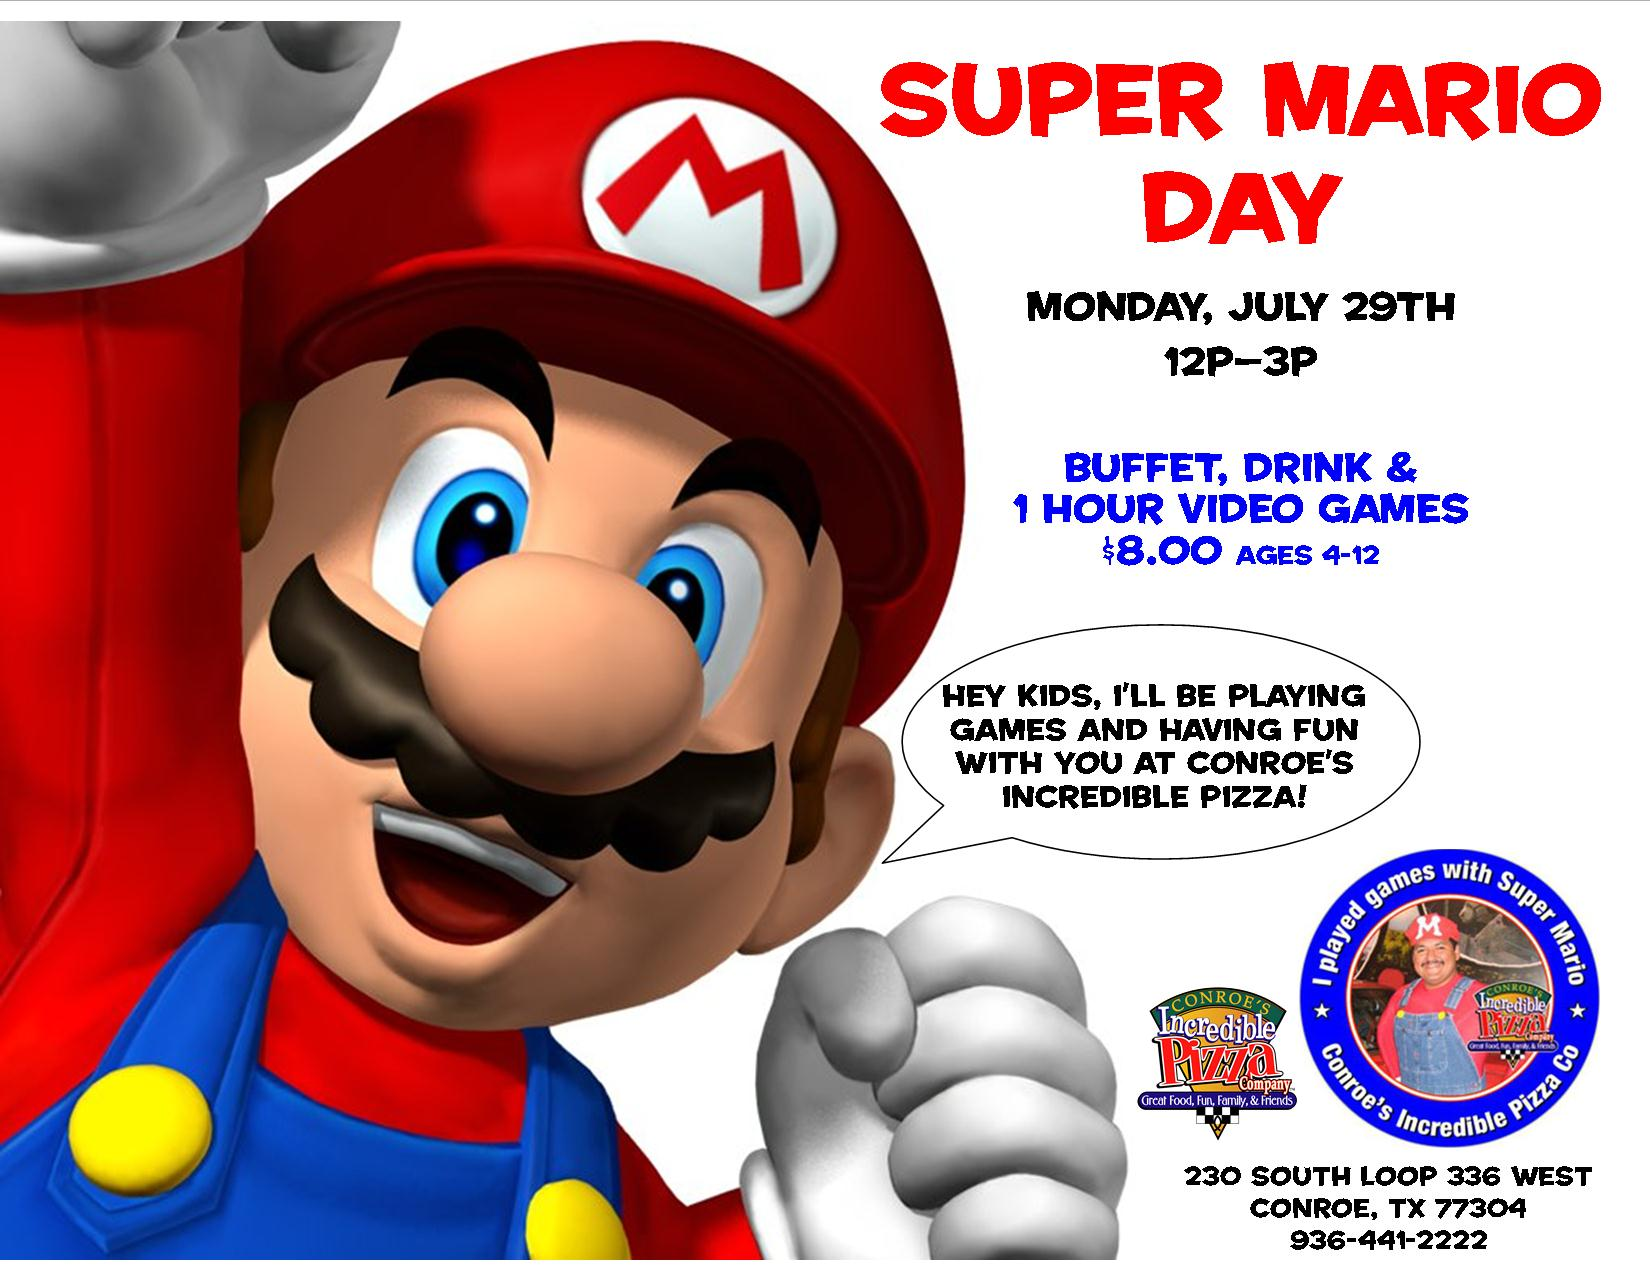 meet super mario incredible pizza company enjoy our huge all you